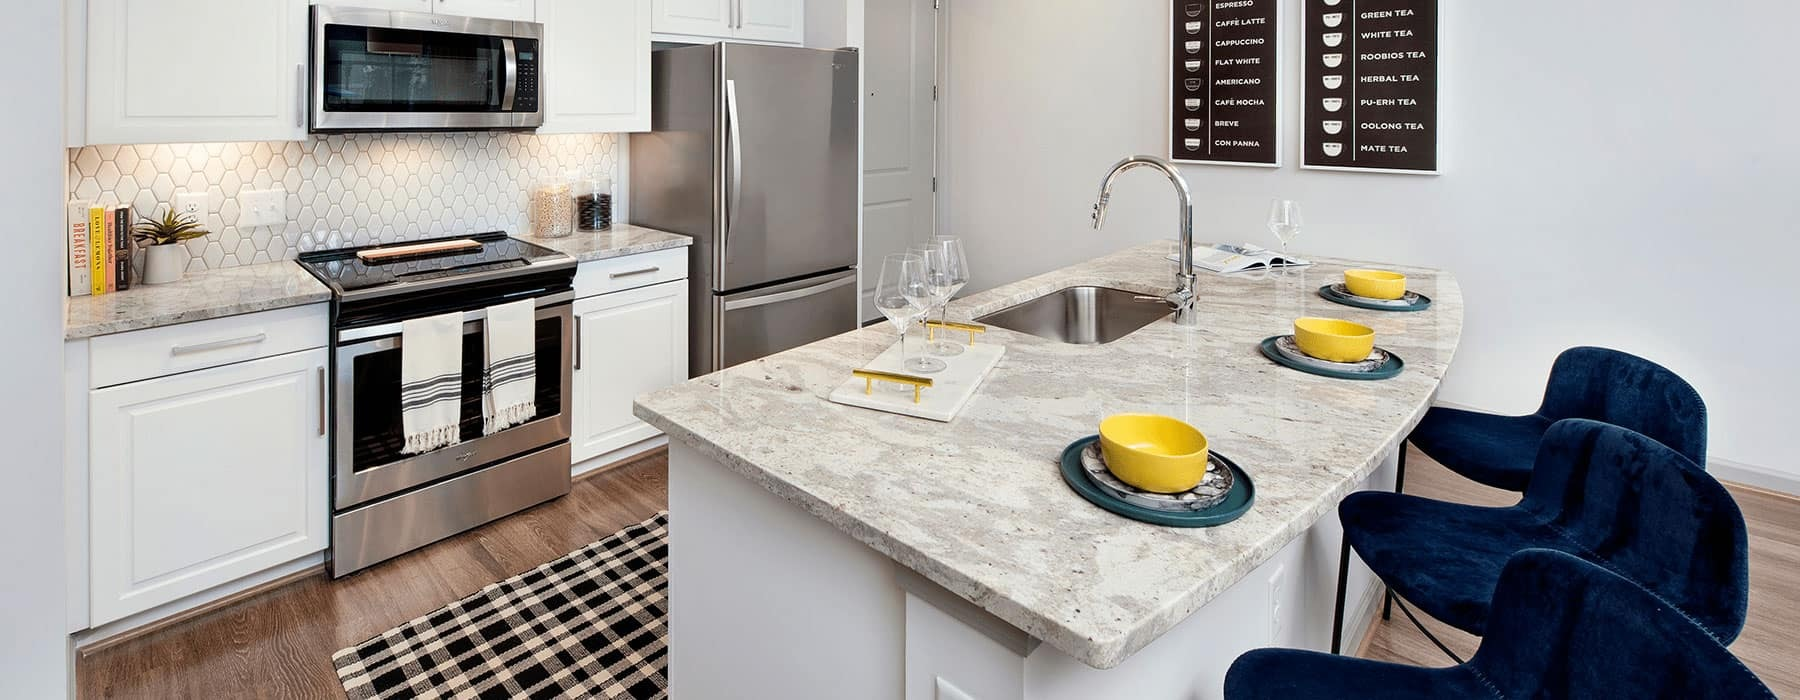 spacious kitchen with an island, ample counter-space & on wood-style flooring